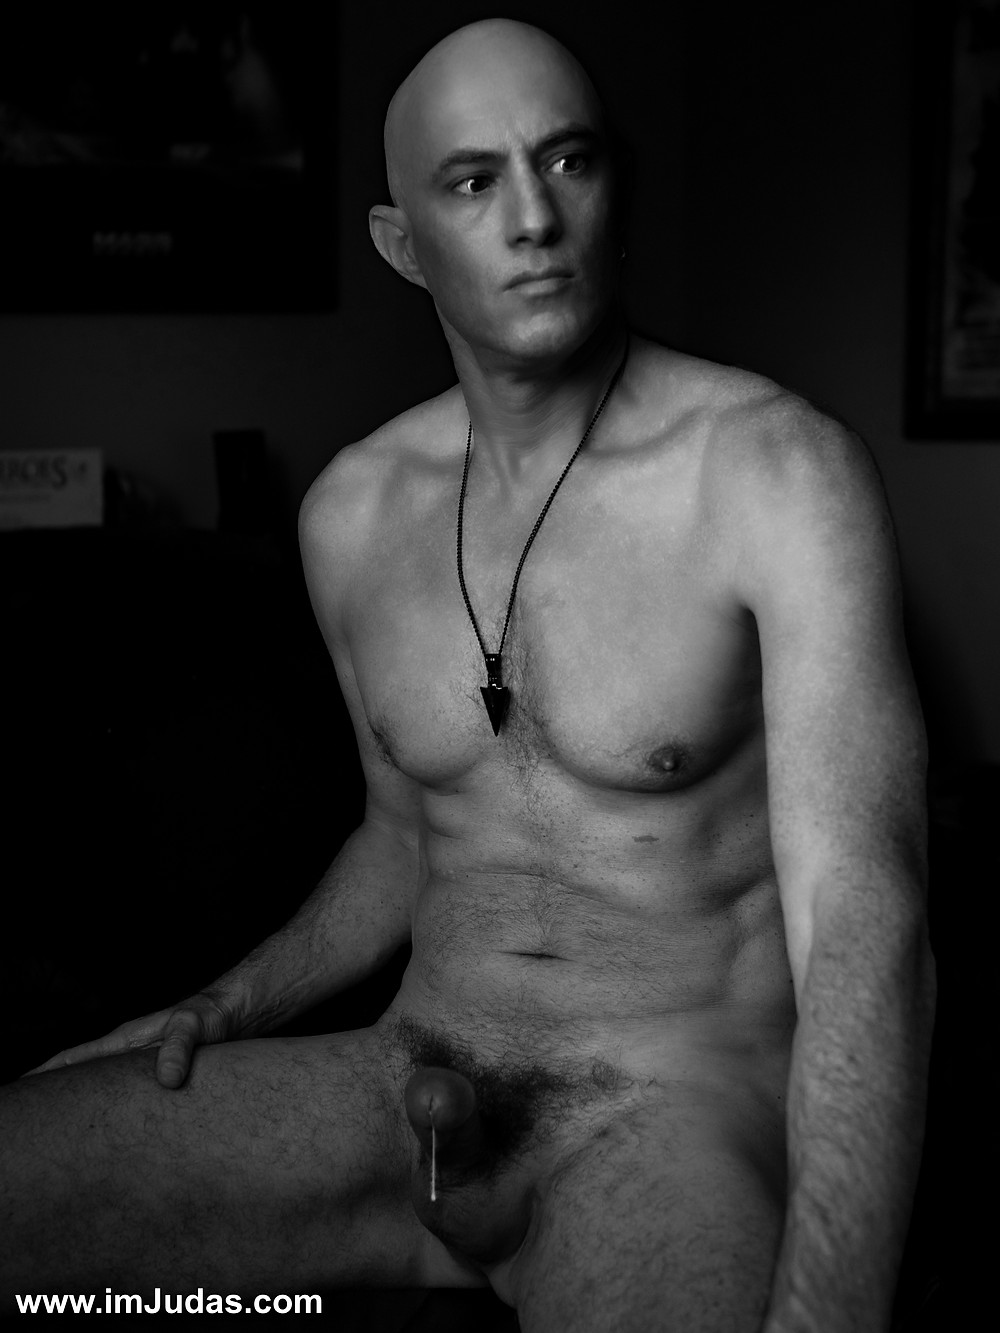 Naked, showing my cum dripping cock